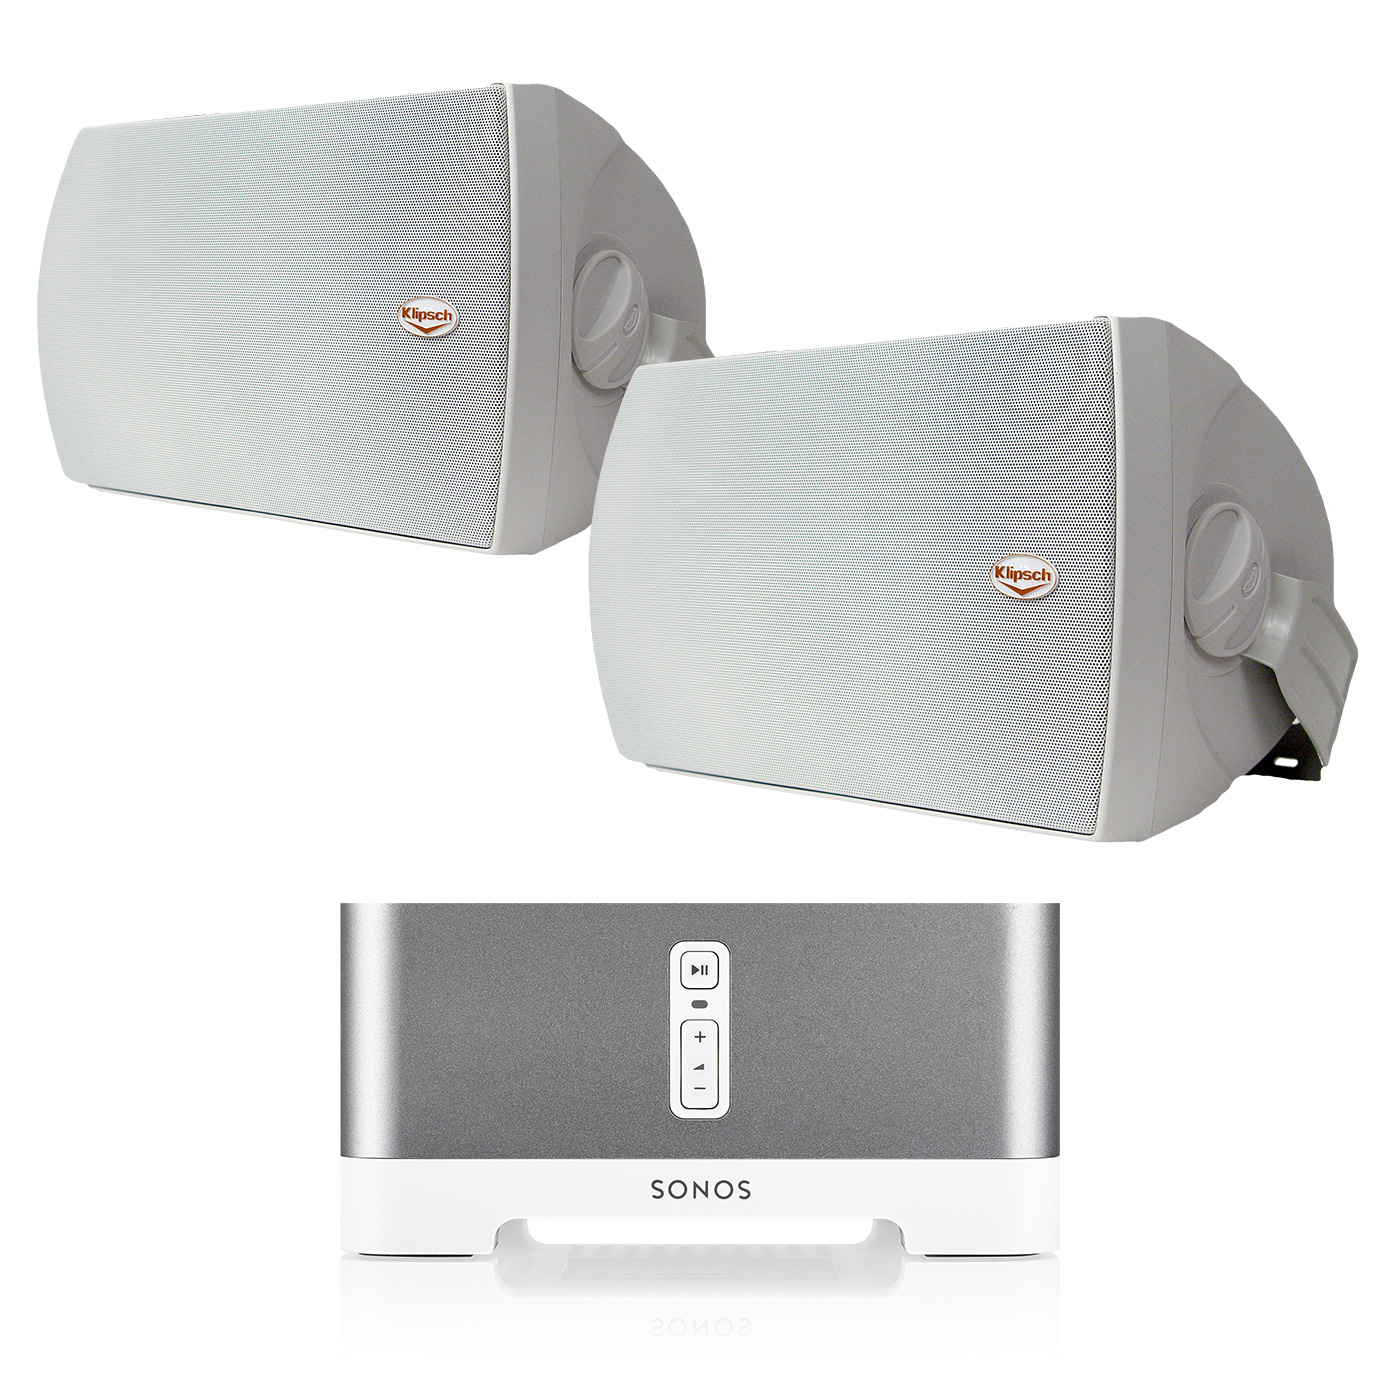 "Sonos CONNECT:AMP Wireless Hi-Fi Player (White) with Klipsch AW-650 6.5"" Reference Series Outdoor Loudspeaker Pair... by Sonos"